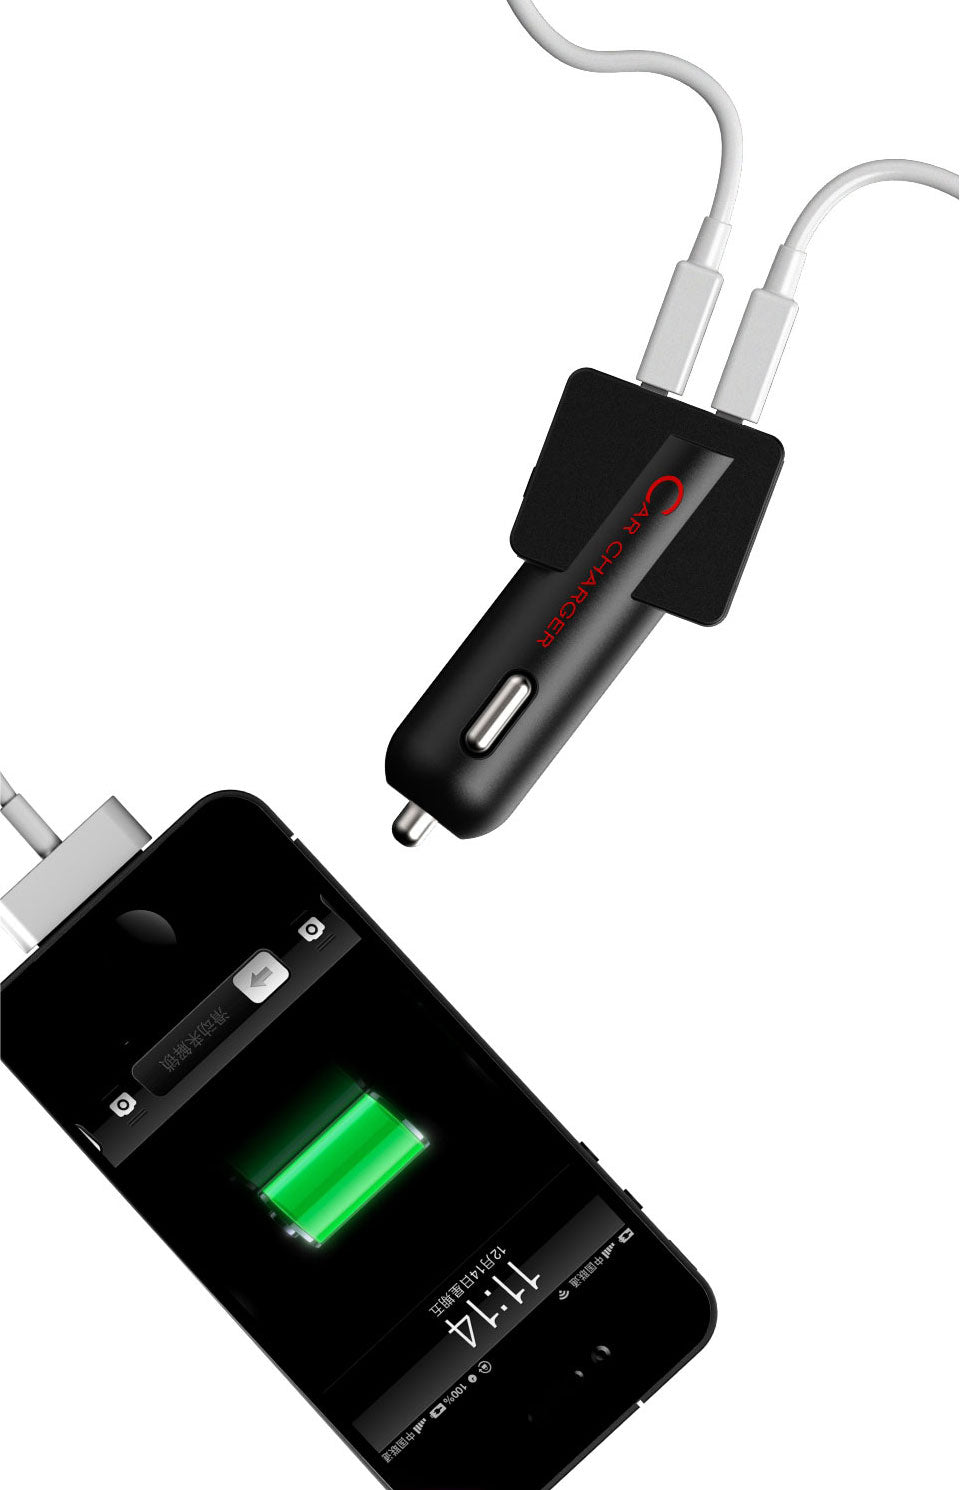 MIPOW T-Plug USB Car Charger (SPC04) Strong Compatibility